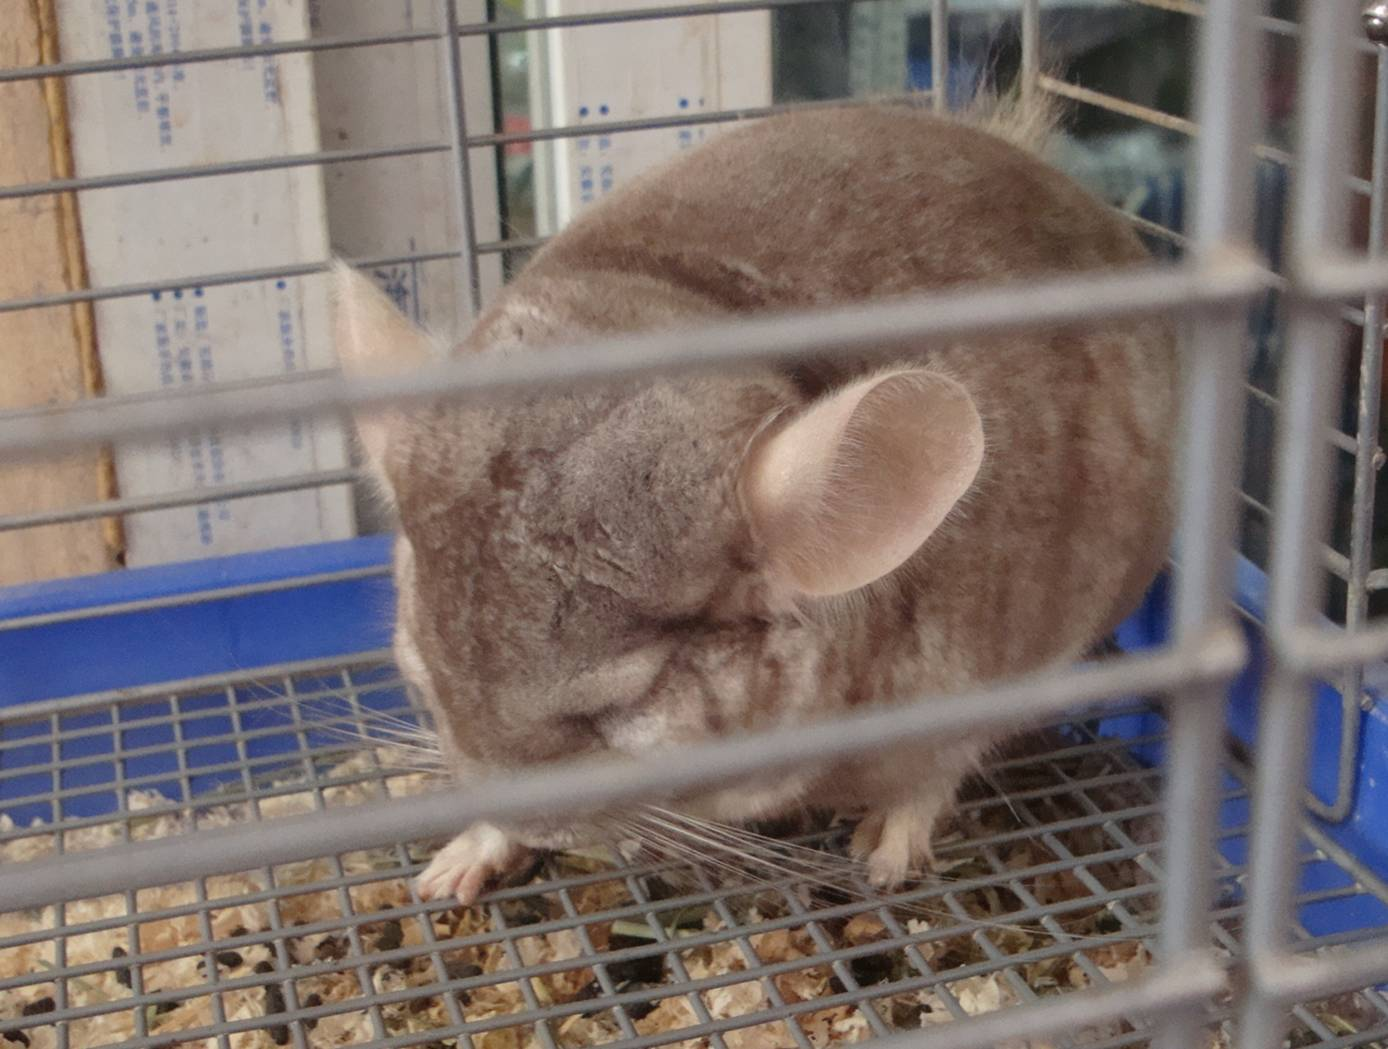 First time I've seen a chinchilla in a pet store.  I used to have one when I was a kid.  Long story.